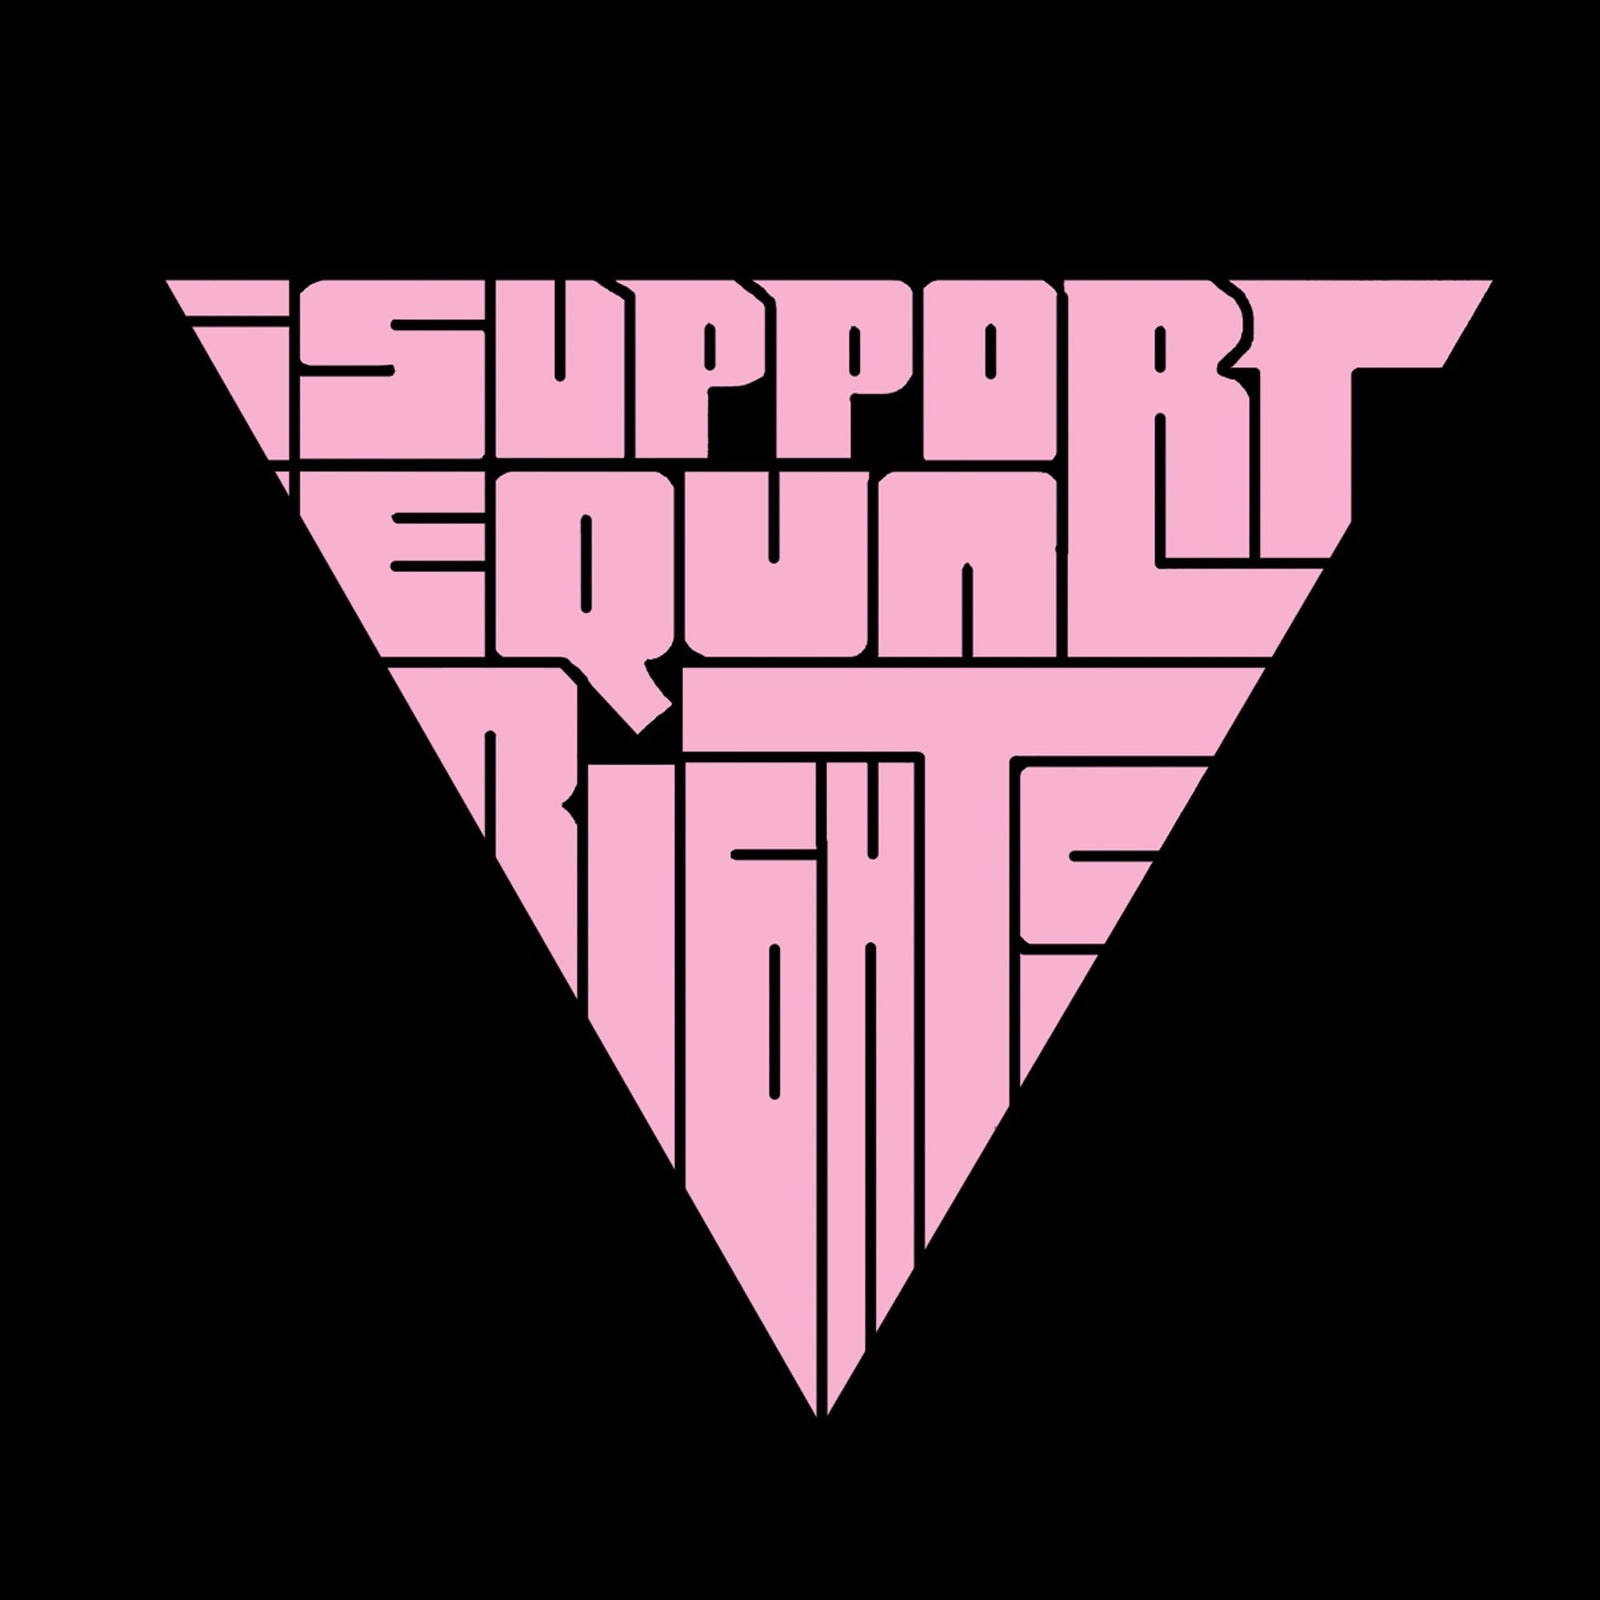 Large Tote Bag - I SUPPORT EQUAL RIGHTS